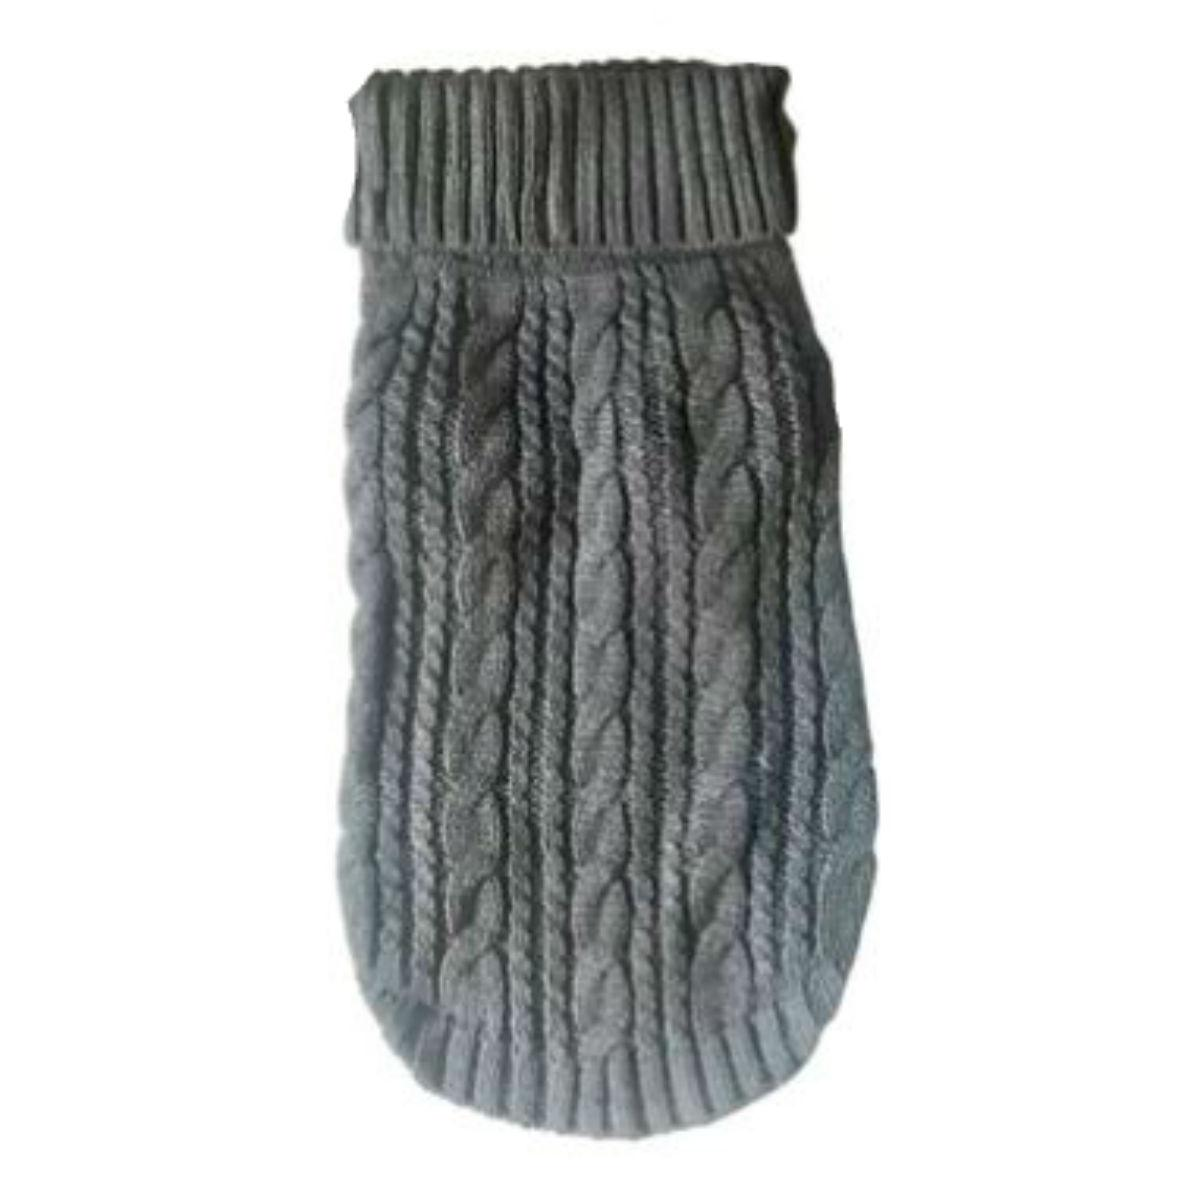 The Dog Squad Scottish Cable Knit Dog Sweater - Charcoal Gray